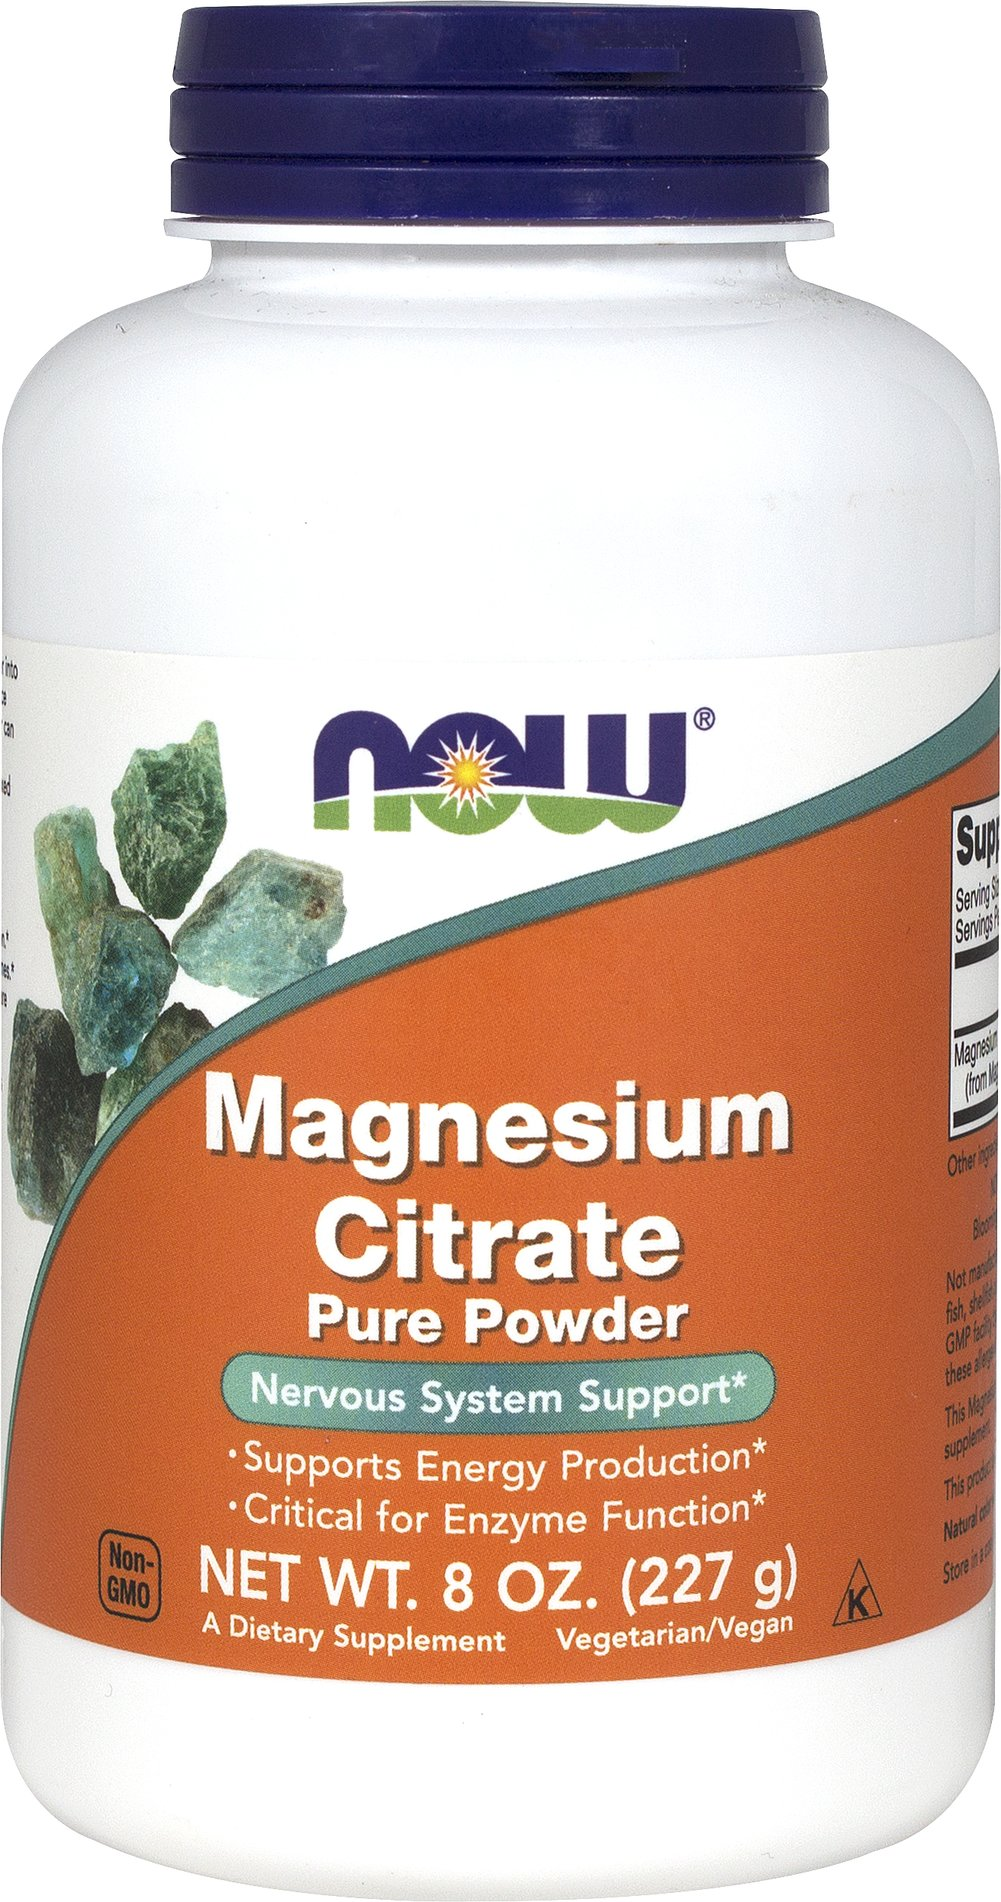 Magnesium Citrate Powder 227 grams  8 oz Powder 227 gram $6.93